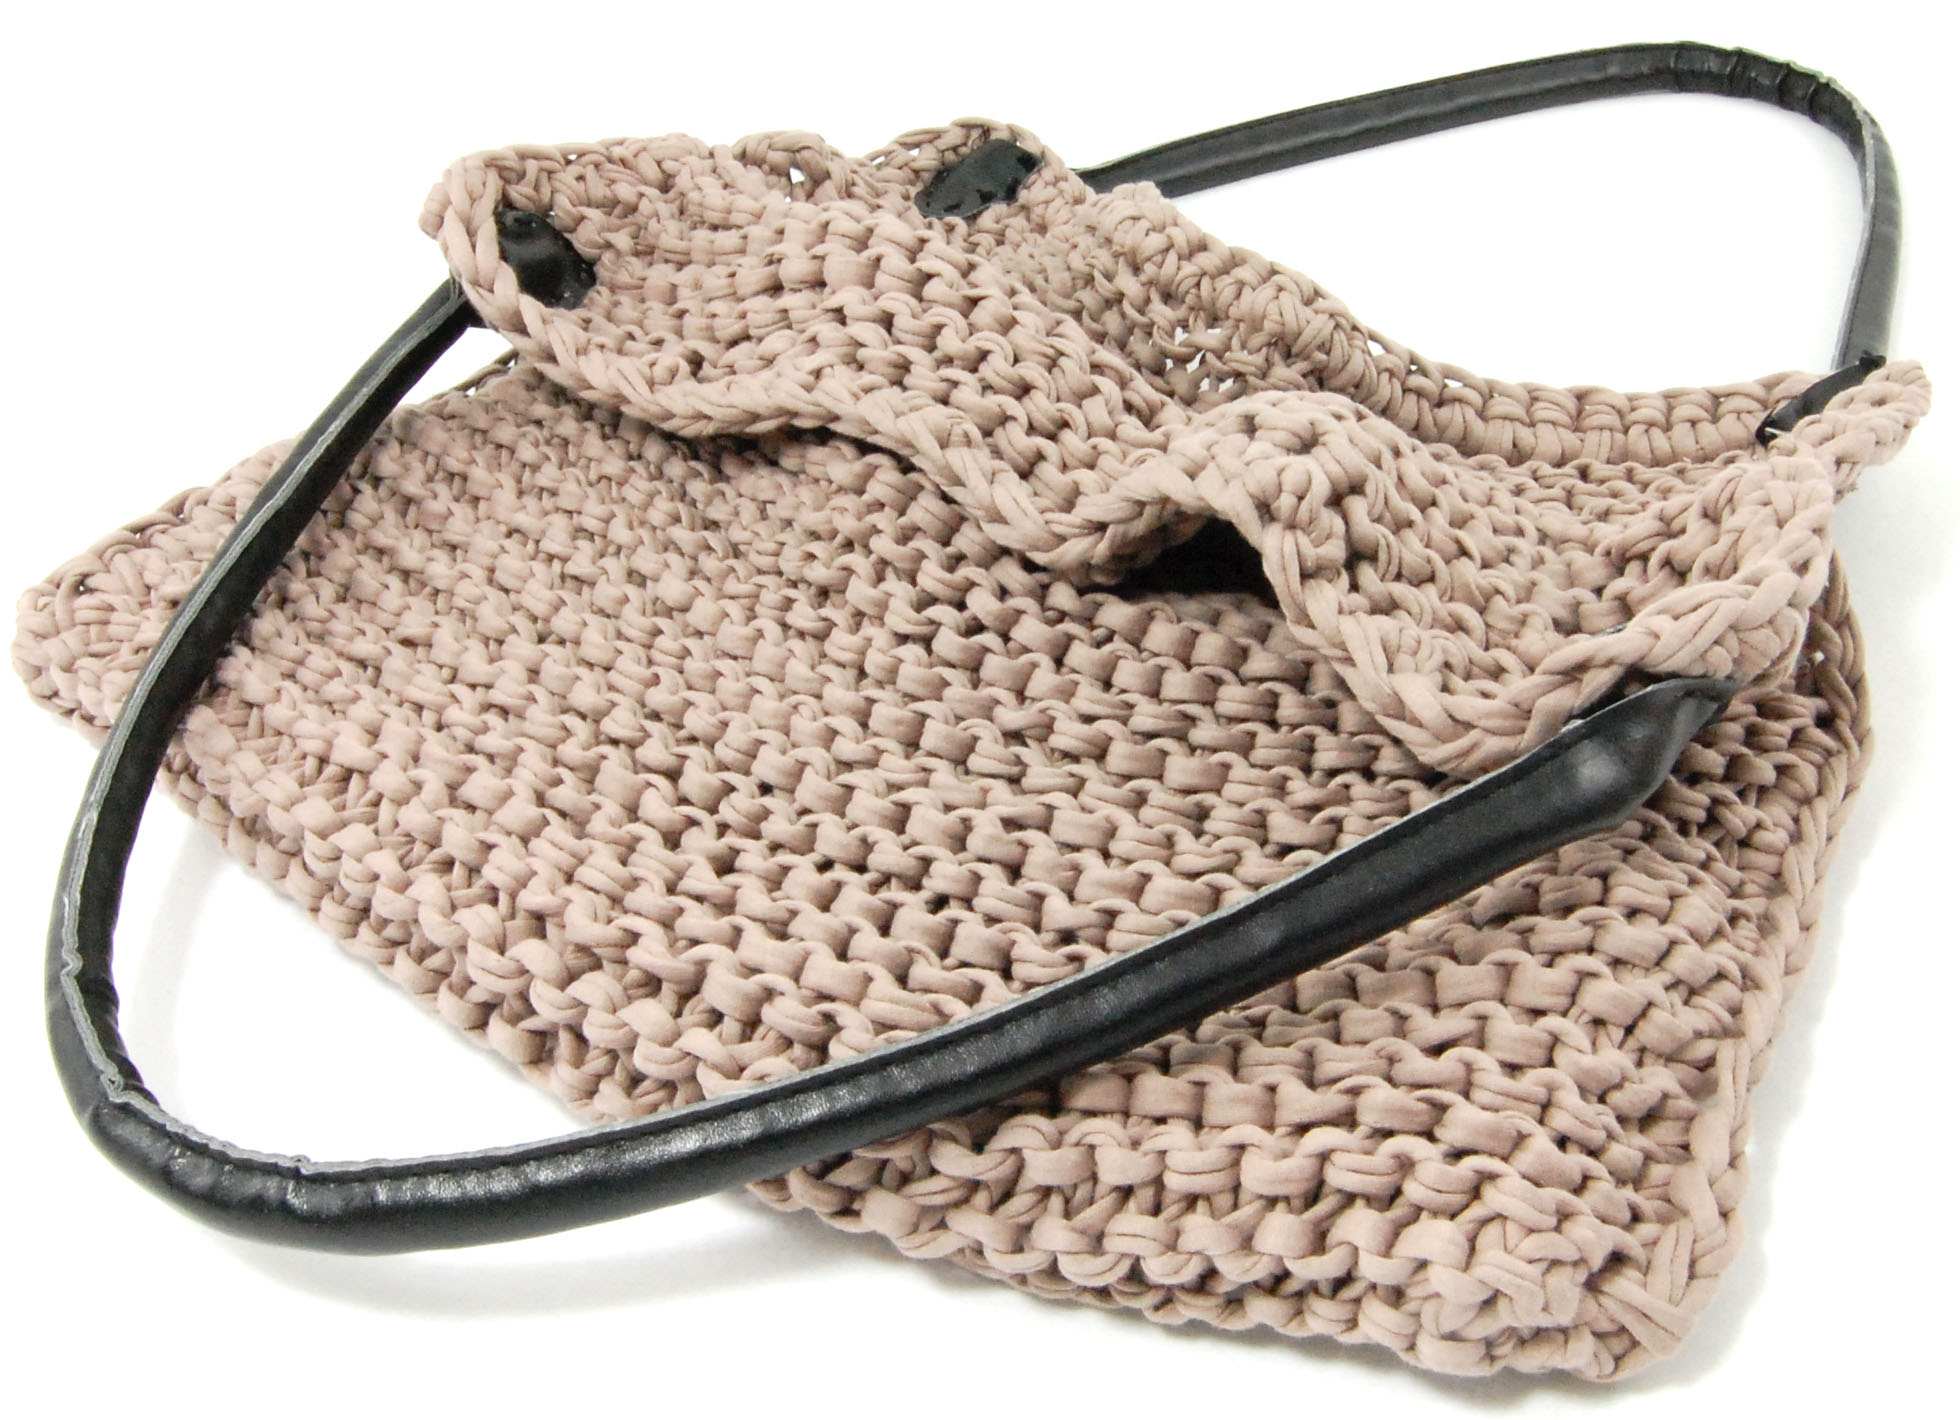 Knitted bag tutorial | LVLY